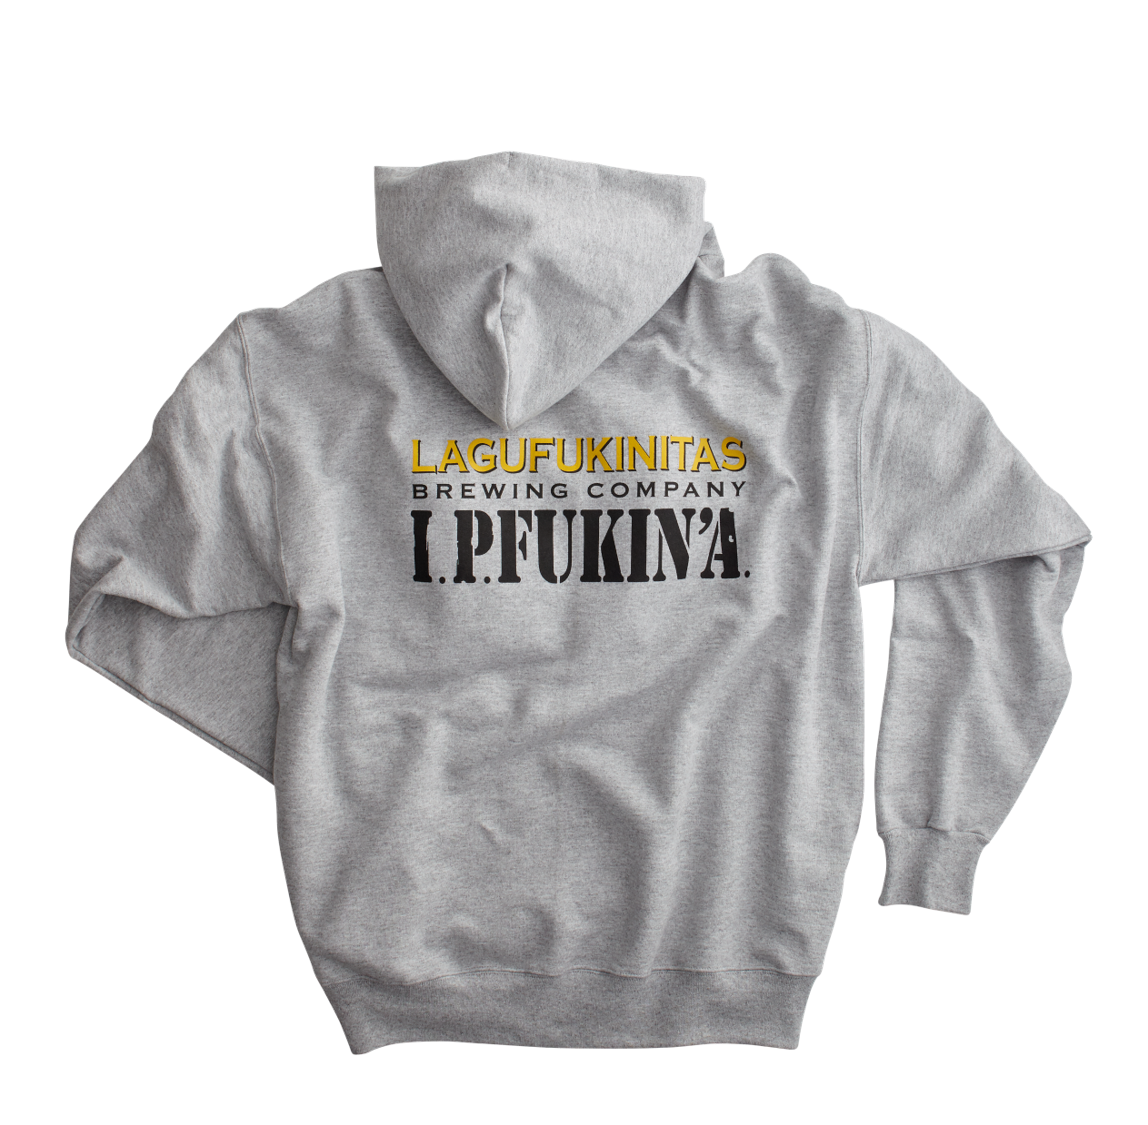 This hoody right here? This is the one. The realfukindeal.   Color: Grey  Material: 90% cotton, 10% polyester